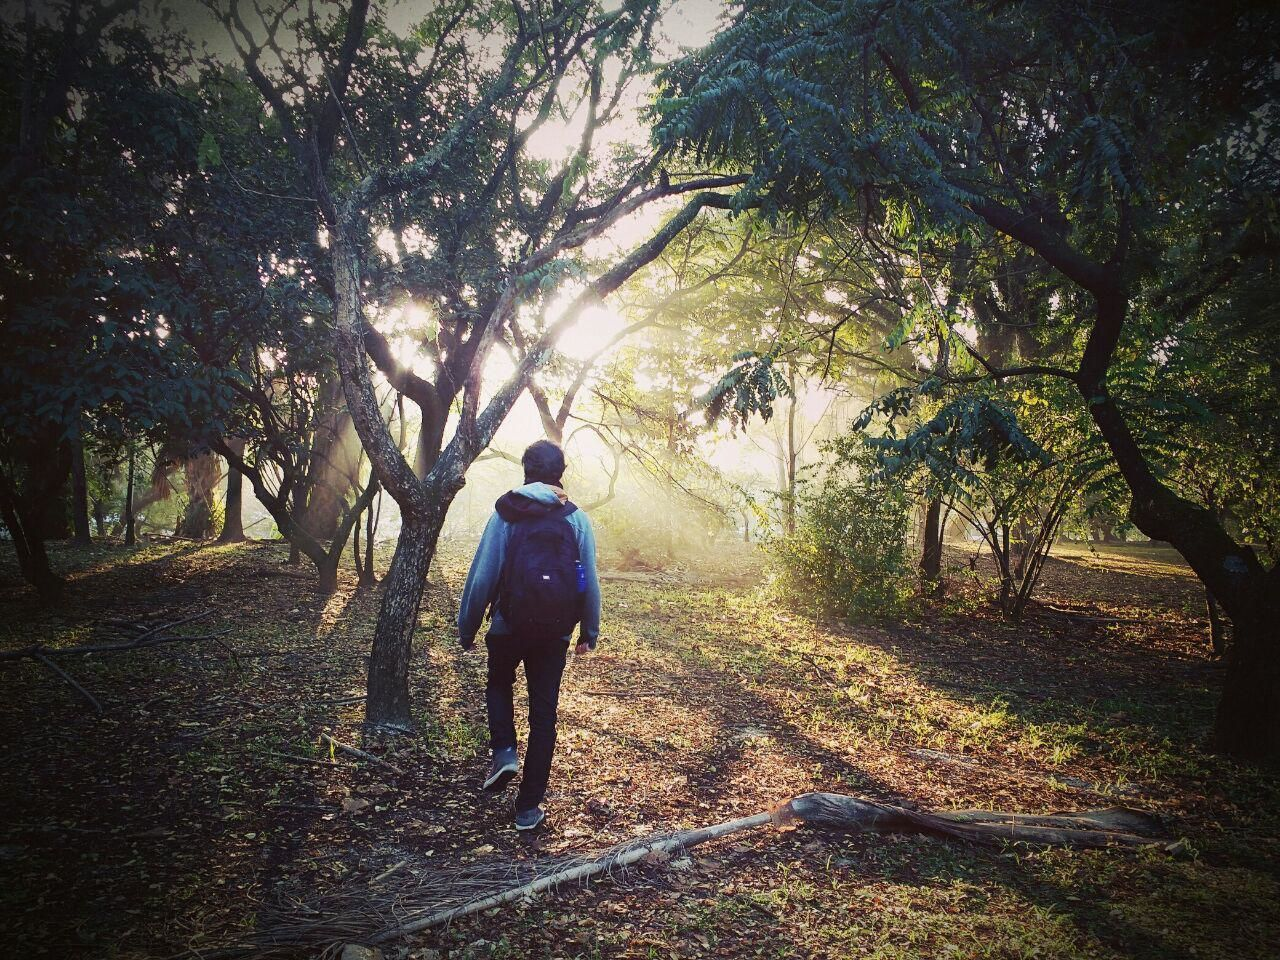 Early morning in the woods Beauty In Nature Casual Clothing Day Diminishing Perspective Dirt Road Full Length Growth Landscape Leisure Activity Lifestyles Nature Non-urban Scene Outdoors Plant Rear View The Way Forward Tranquil Scene Tranquility Tree Vanishing Point The Magic Mission